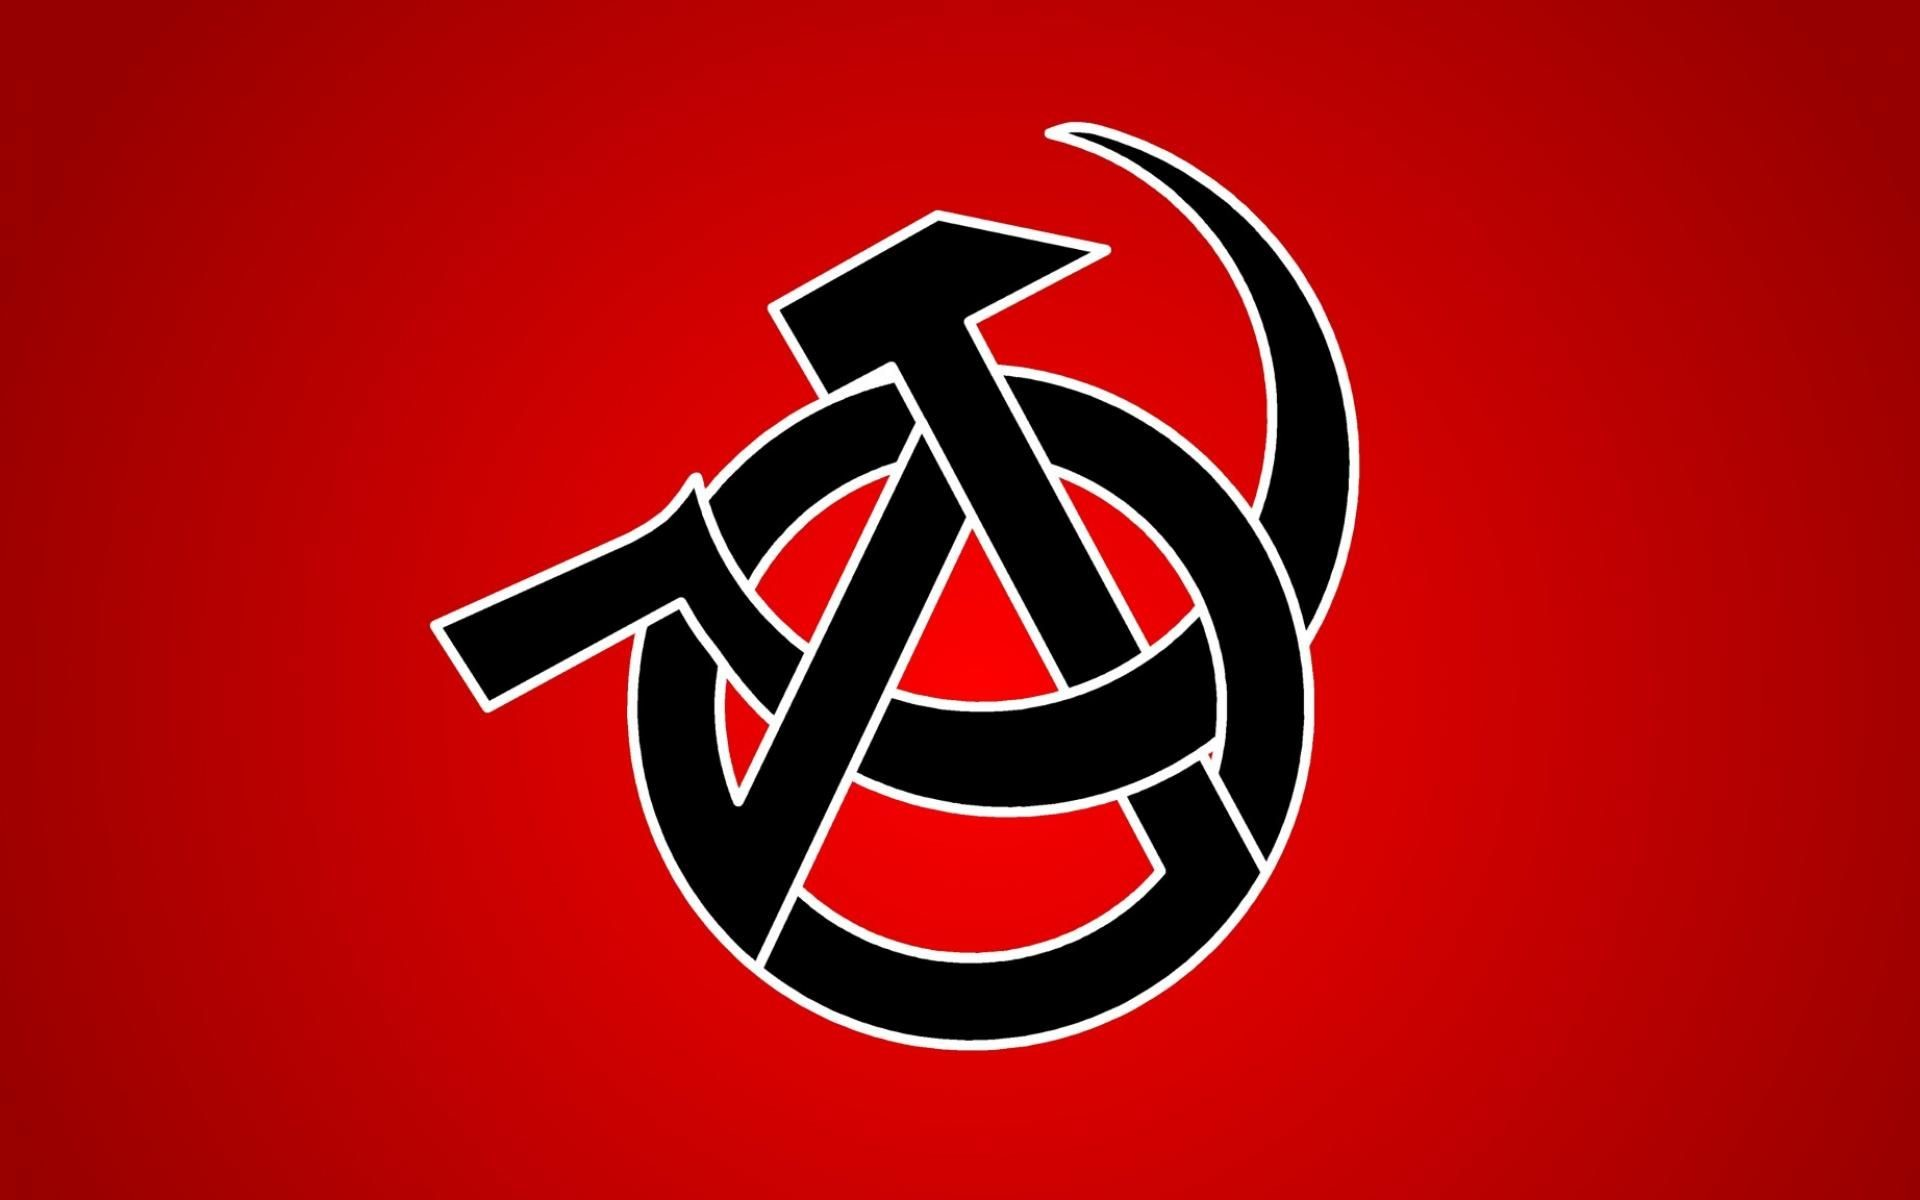 1920x1200 Most viewed anarchy HD wallpapers